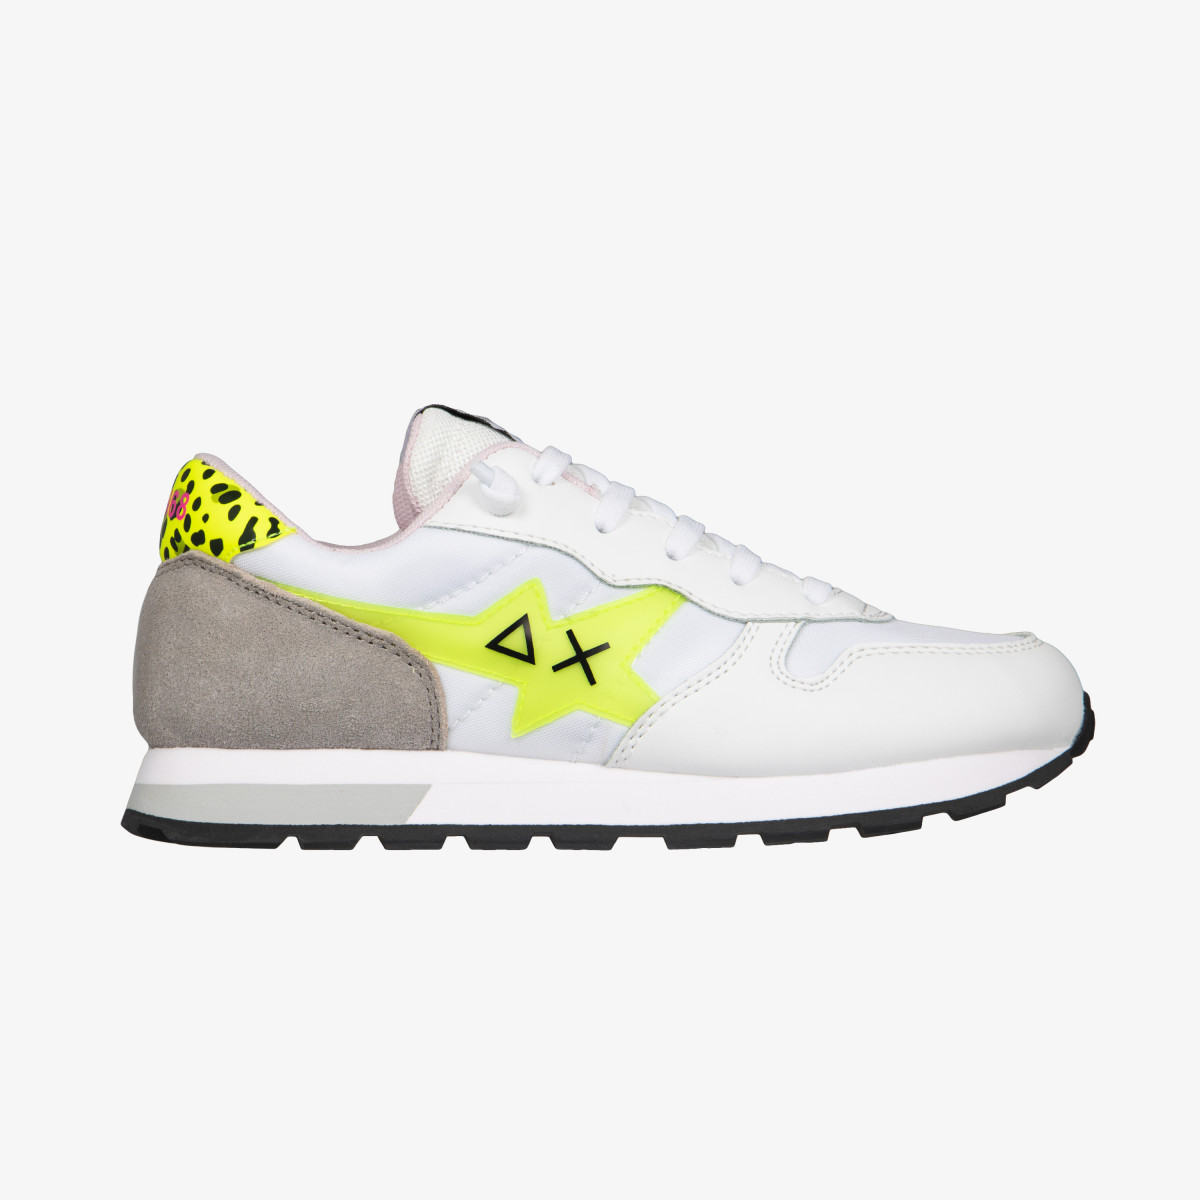 GIRL'S ALLY FLUO WHITE/YELLOW FLUO